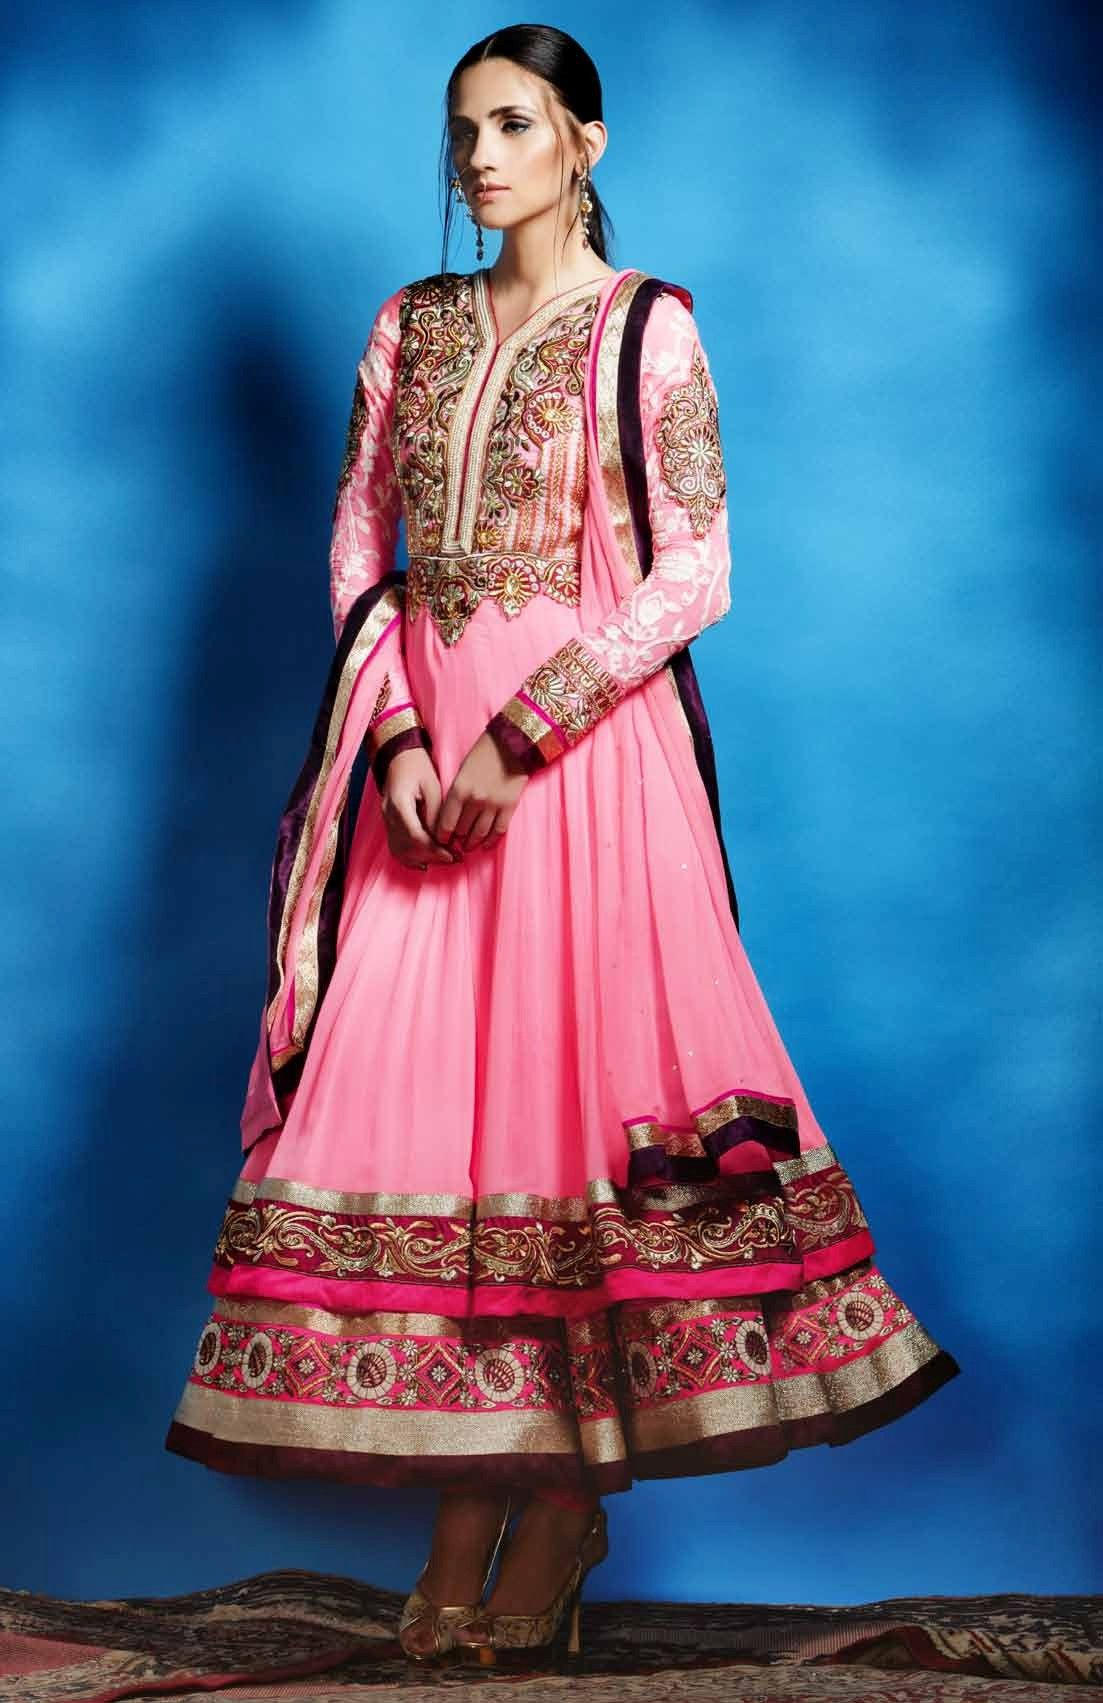 DEAR ALL, PLEASE CHECK NEW COLLECTION OF SUPERB ANARKALI SUITS, ALL THESE ARE SEMI STITCHED, BOOK ORDERS NOW : style.ocean9@gmail.com